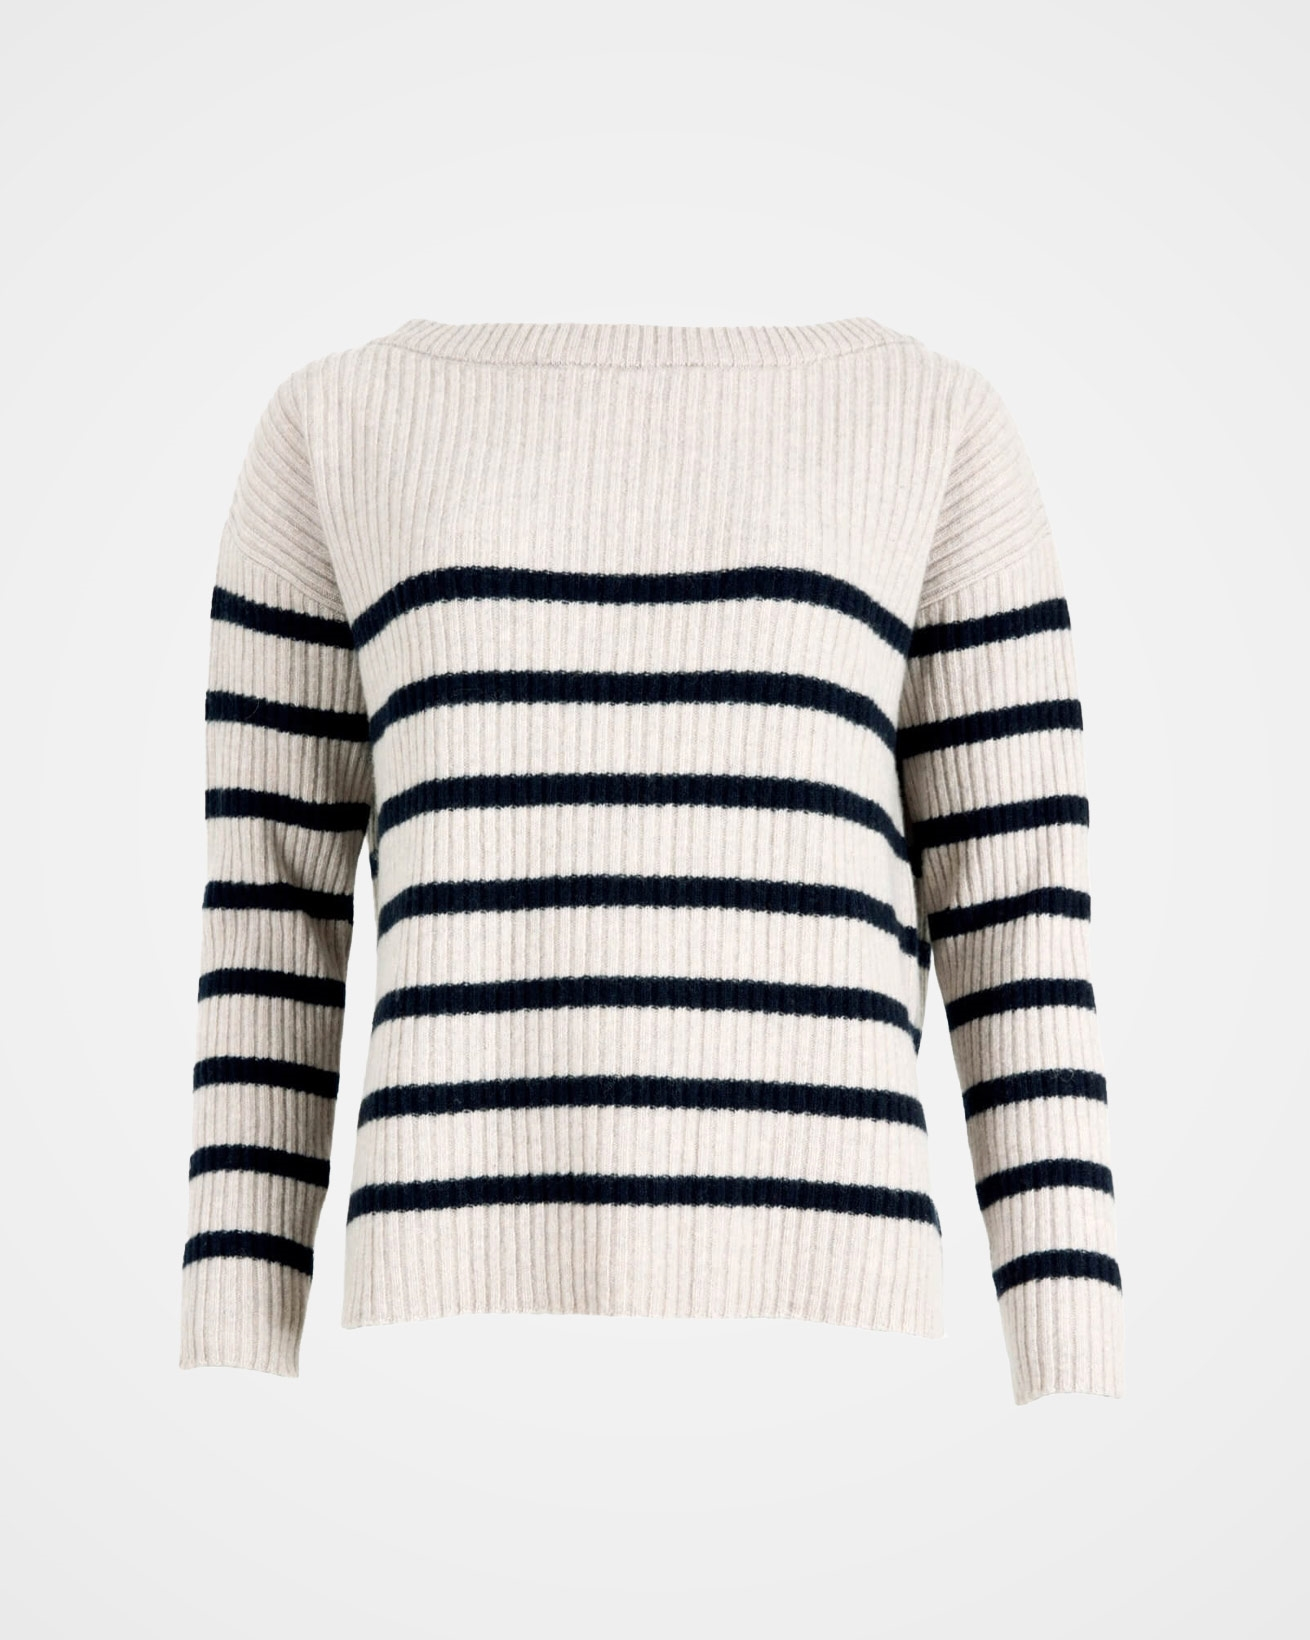 7561_boat-neck-breton-jumper_navy-almond-stripe_front.jpg